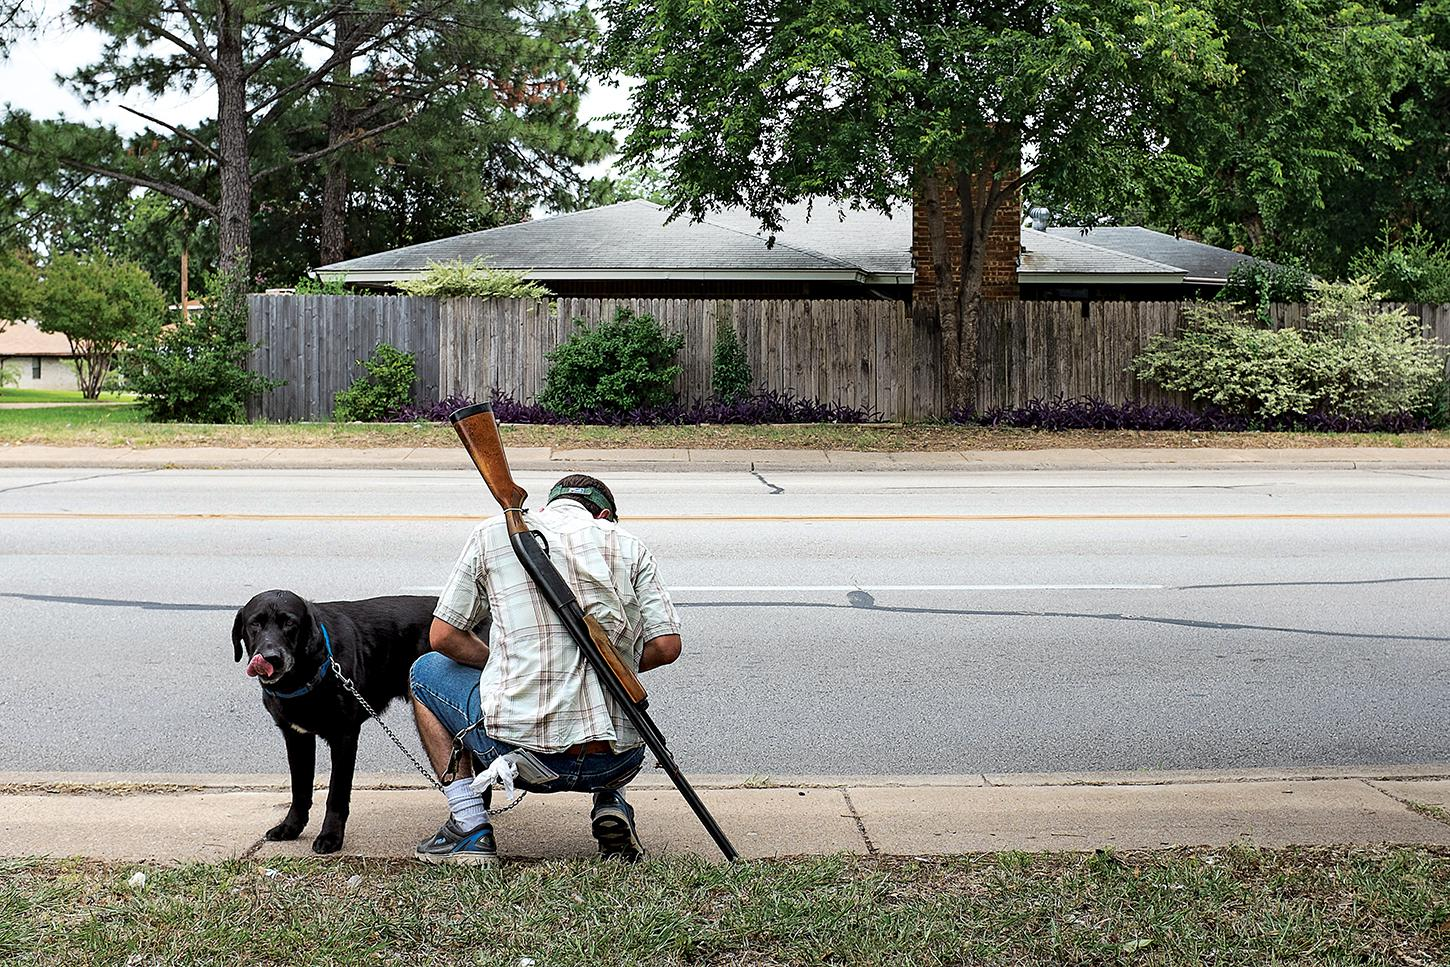 Michael Forster Jr. with his dog and his Remington shotgun during an open carry demonstration in Irving, Texas, on June 21, 2014.